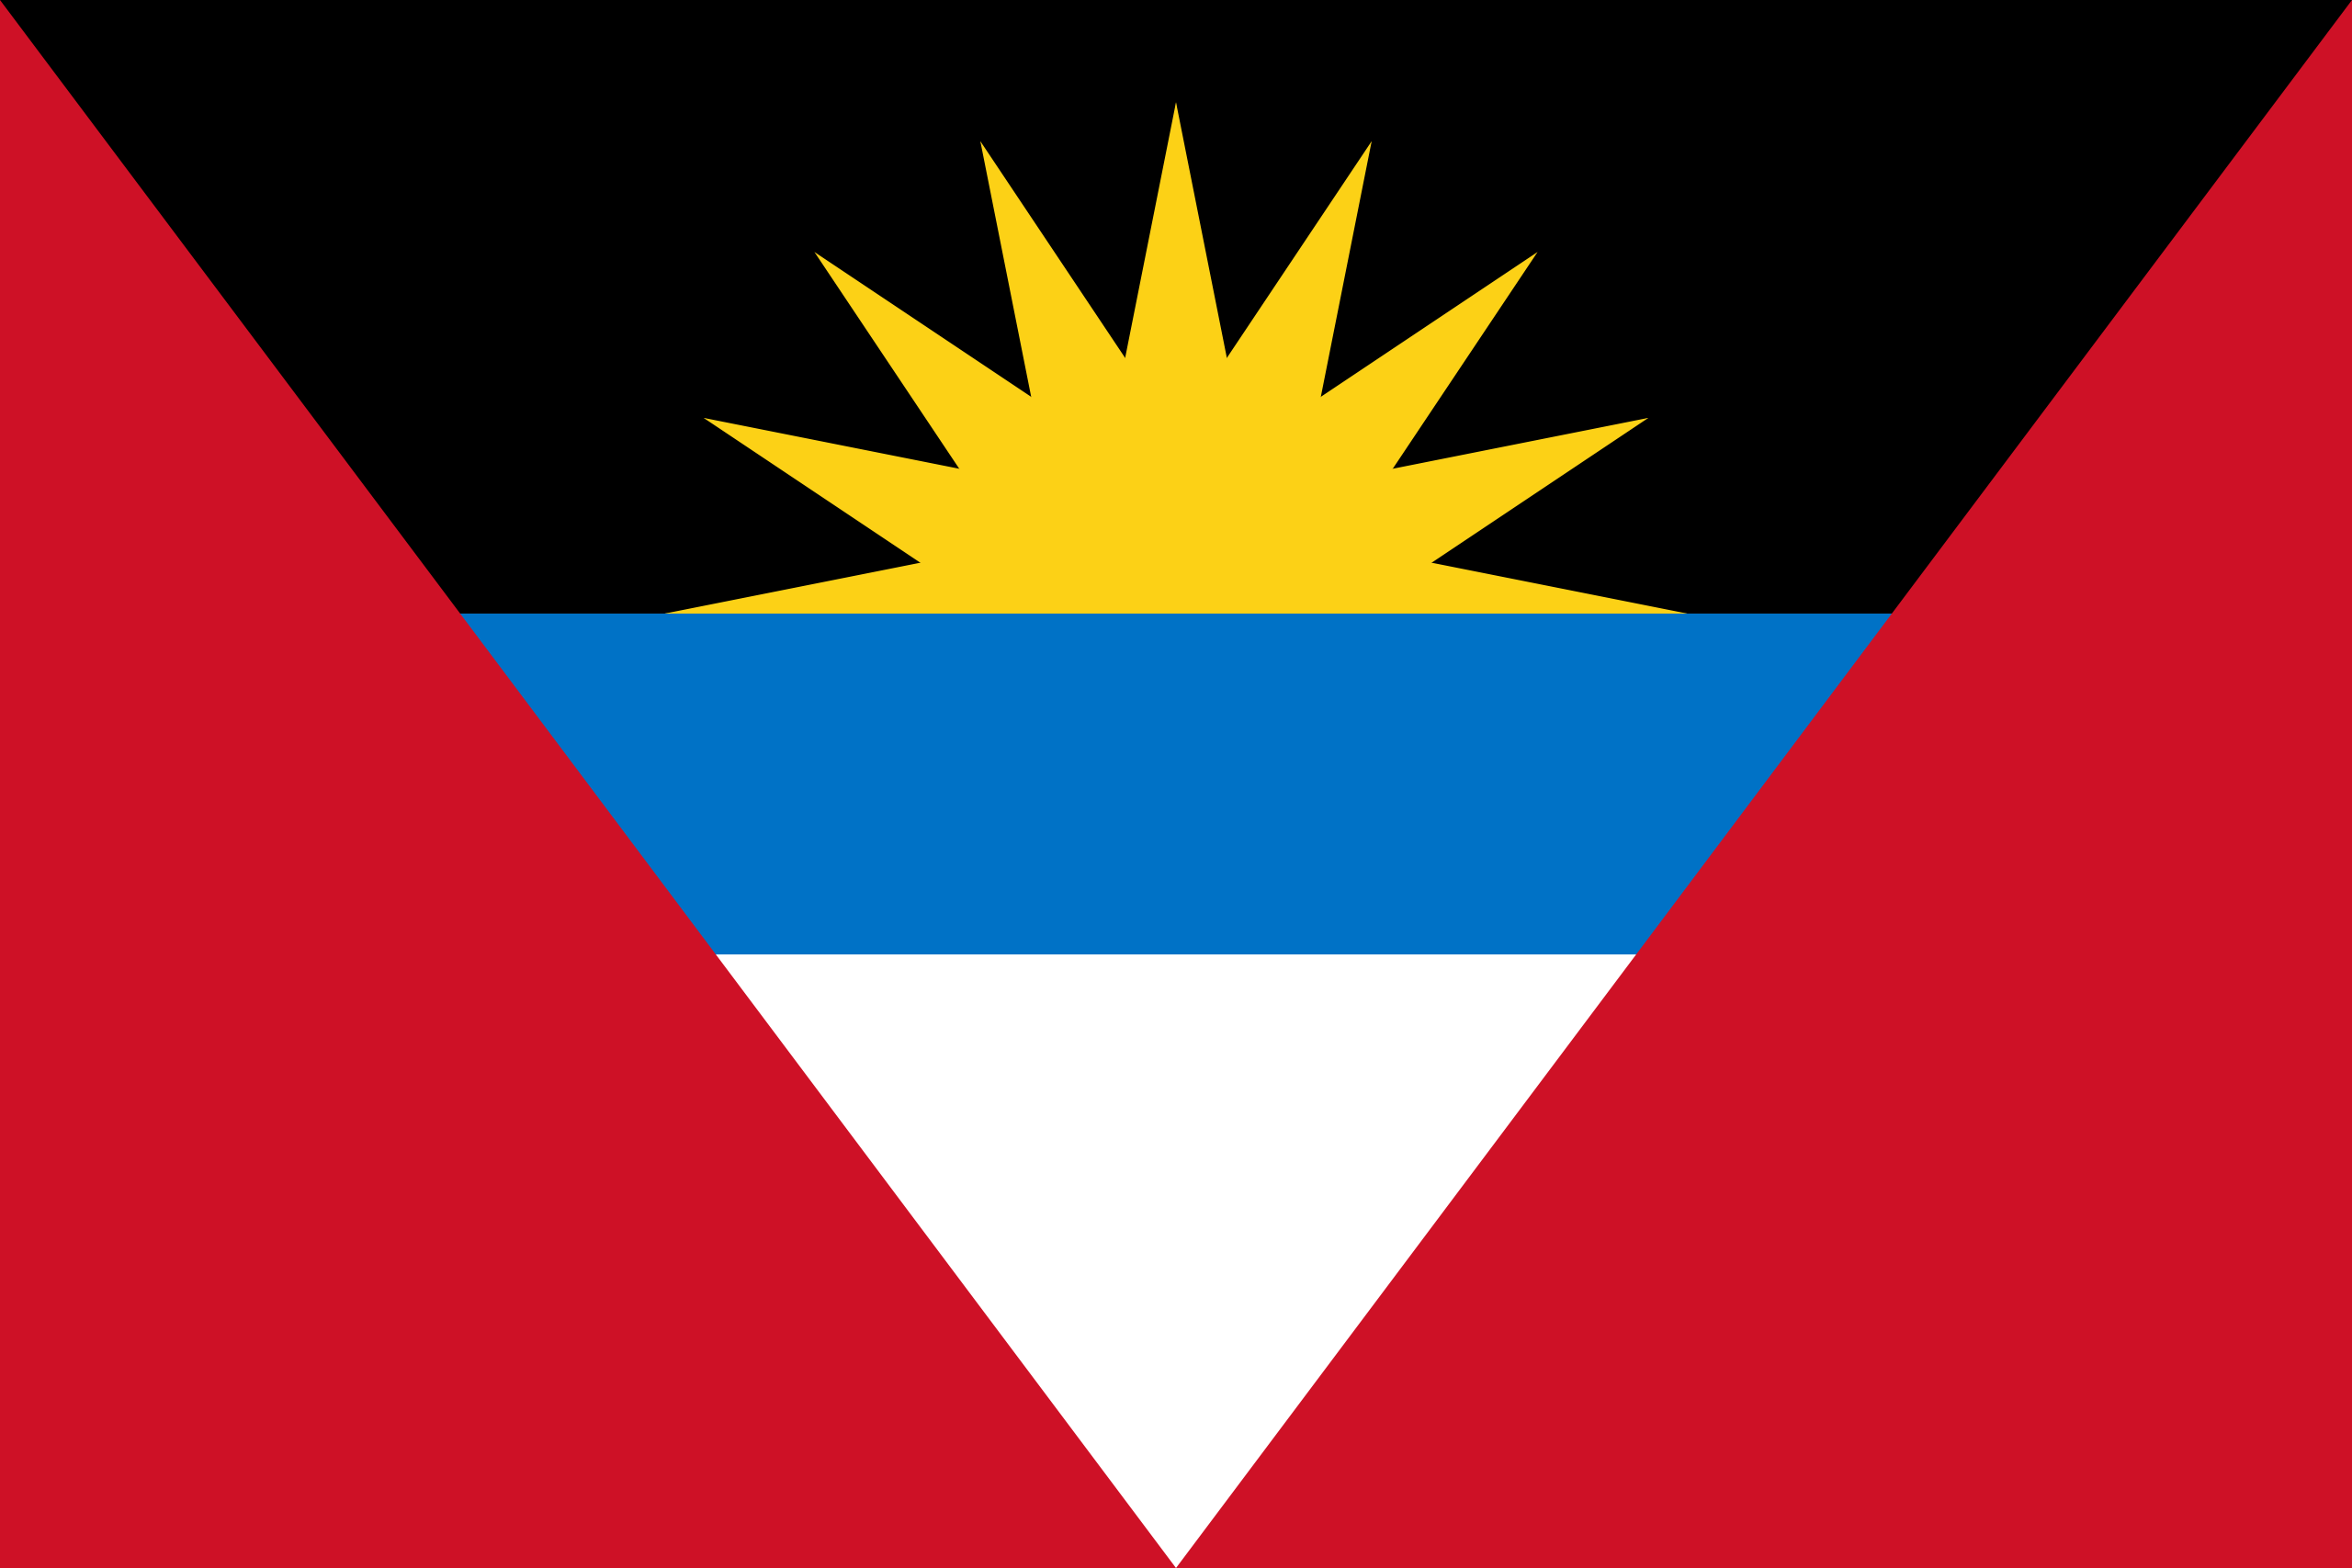 antigua y barbuda, Land, Emblem, Logo, Symbol - Wallpaper HD - Prof.-falken.com